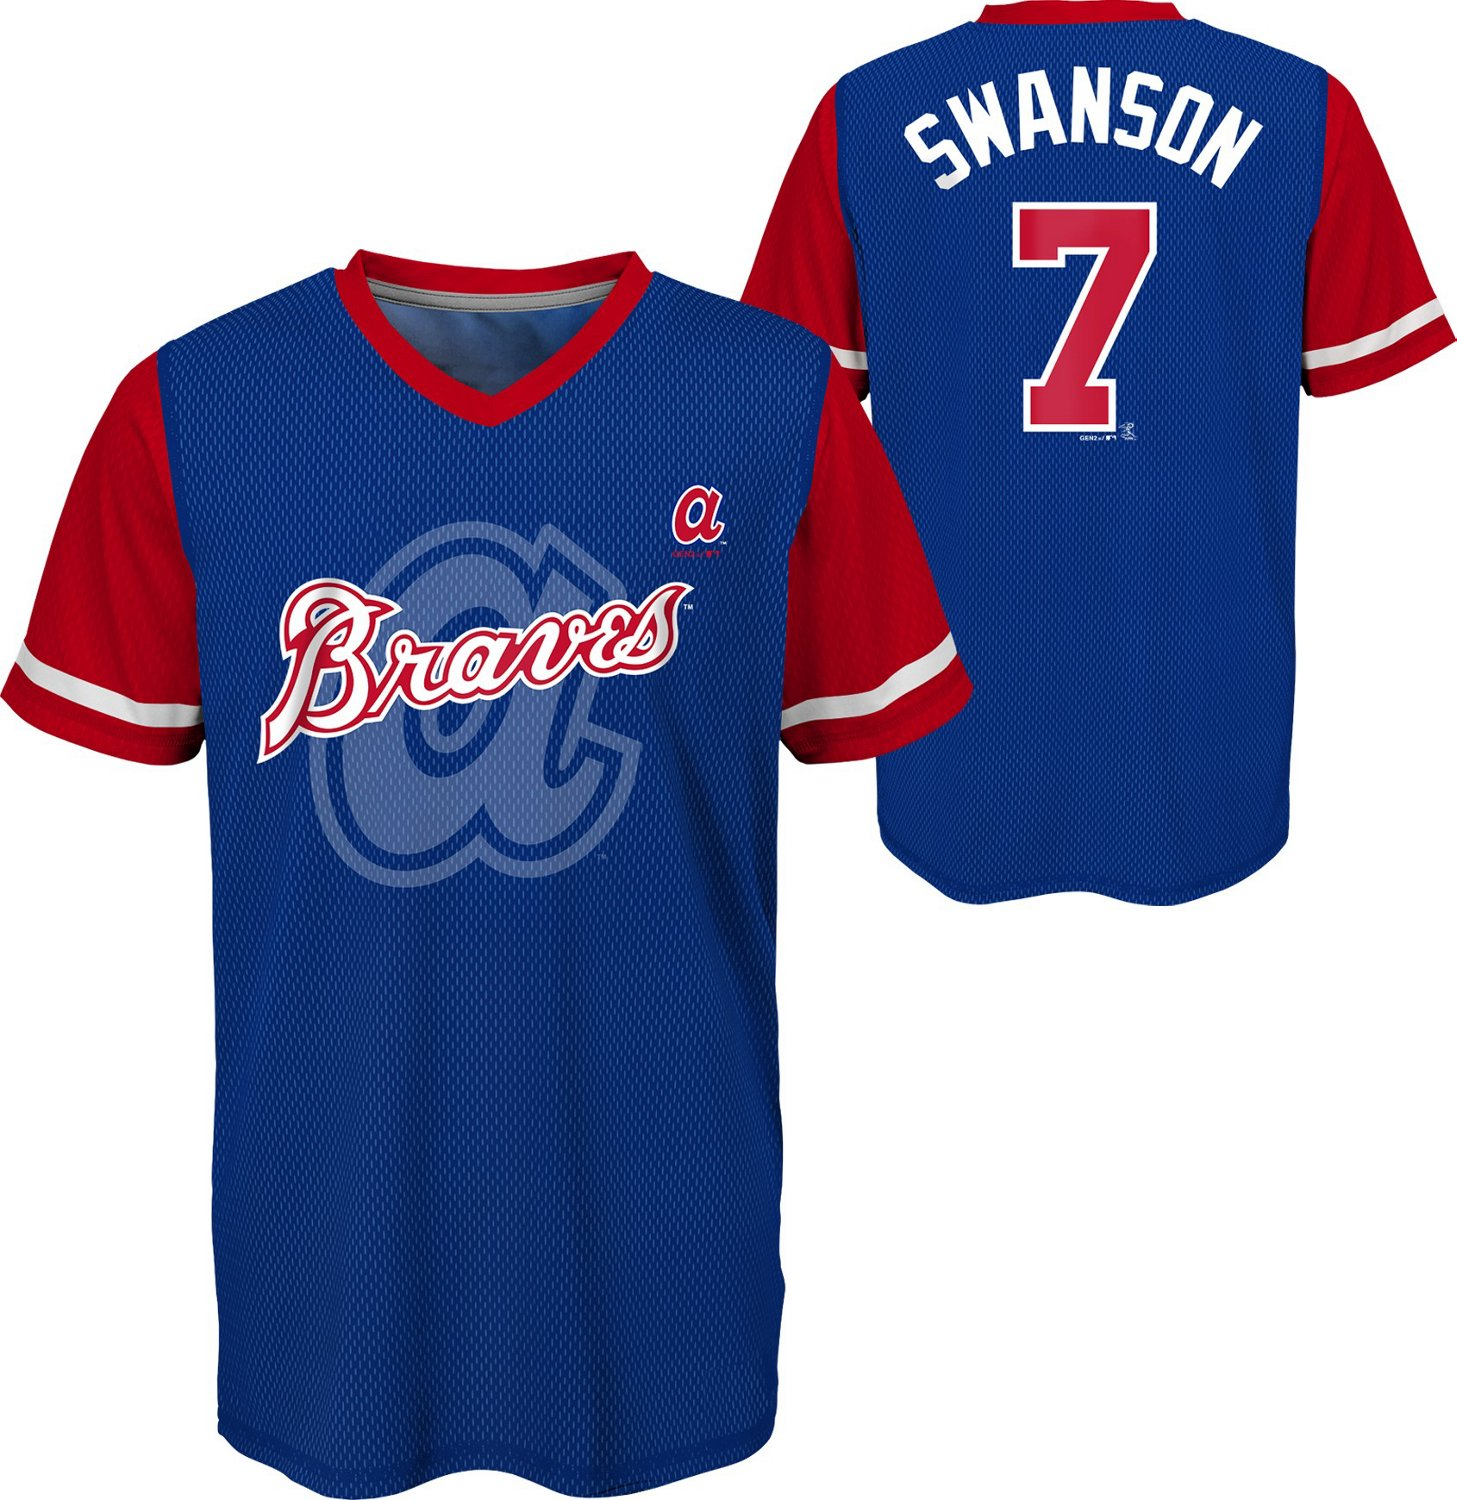 best loved 8cc9c 575b9 Majestic Boys' Atlanta Braves Dansby Swanson Play Hard V-neck NN Jersey  T-shirt